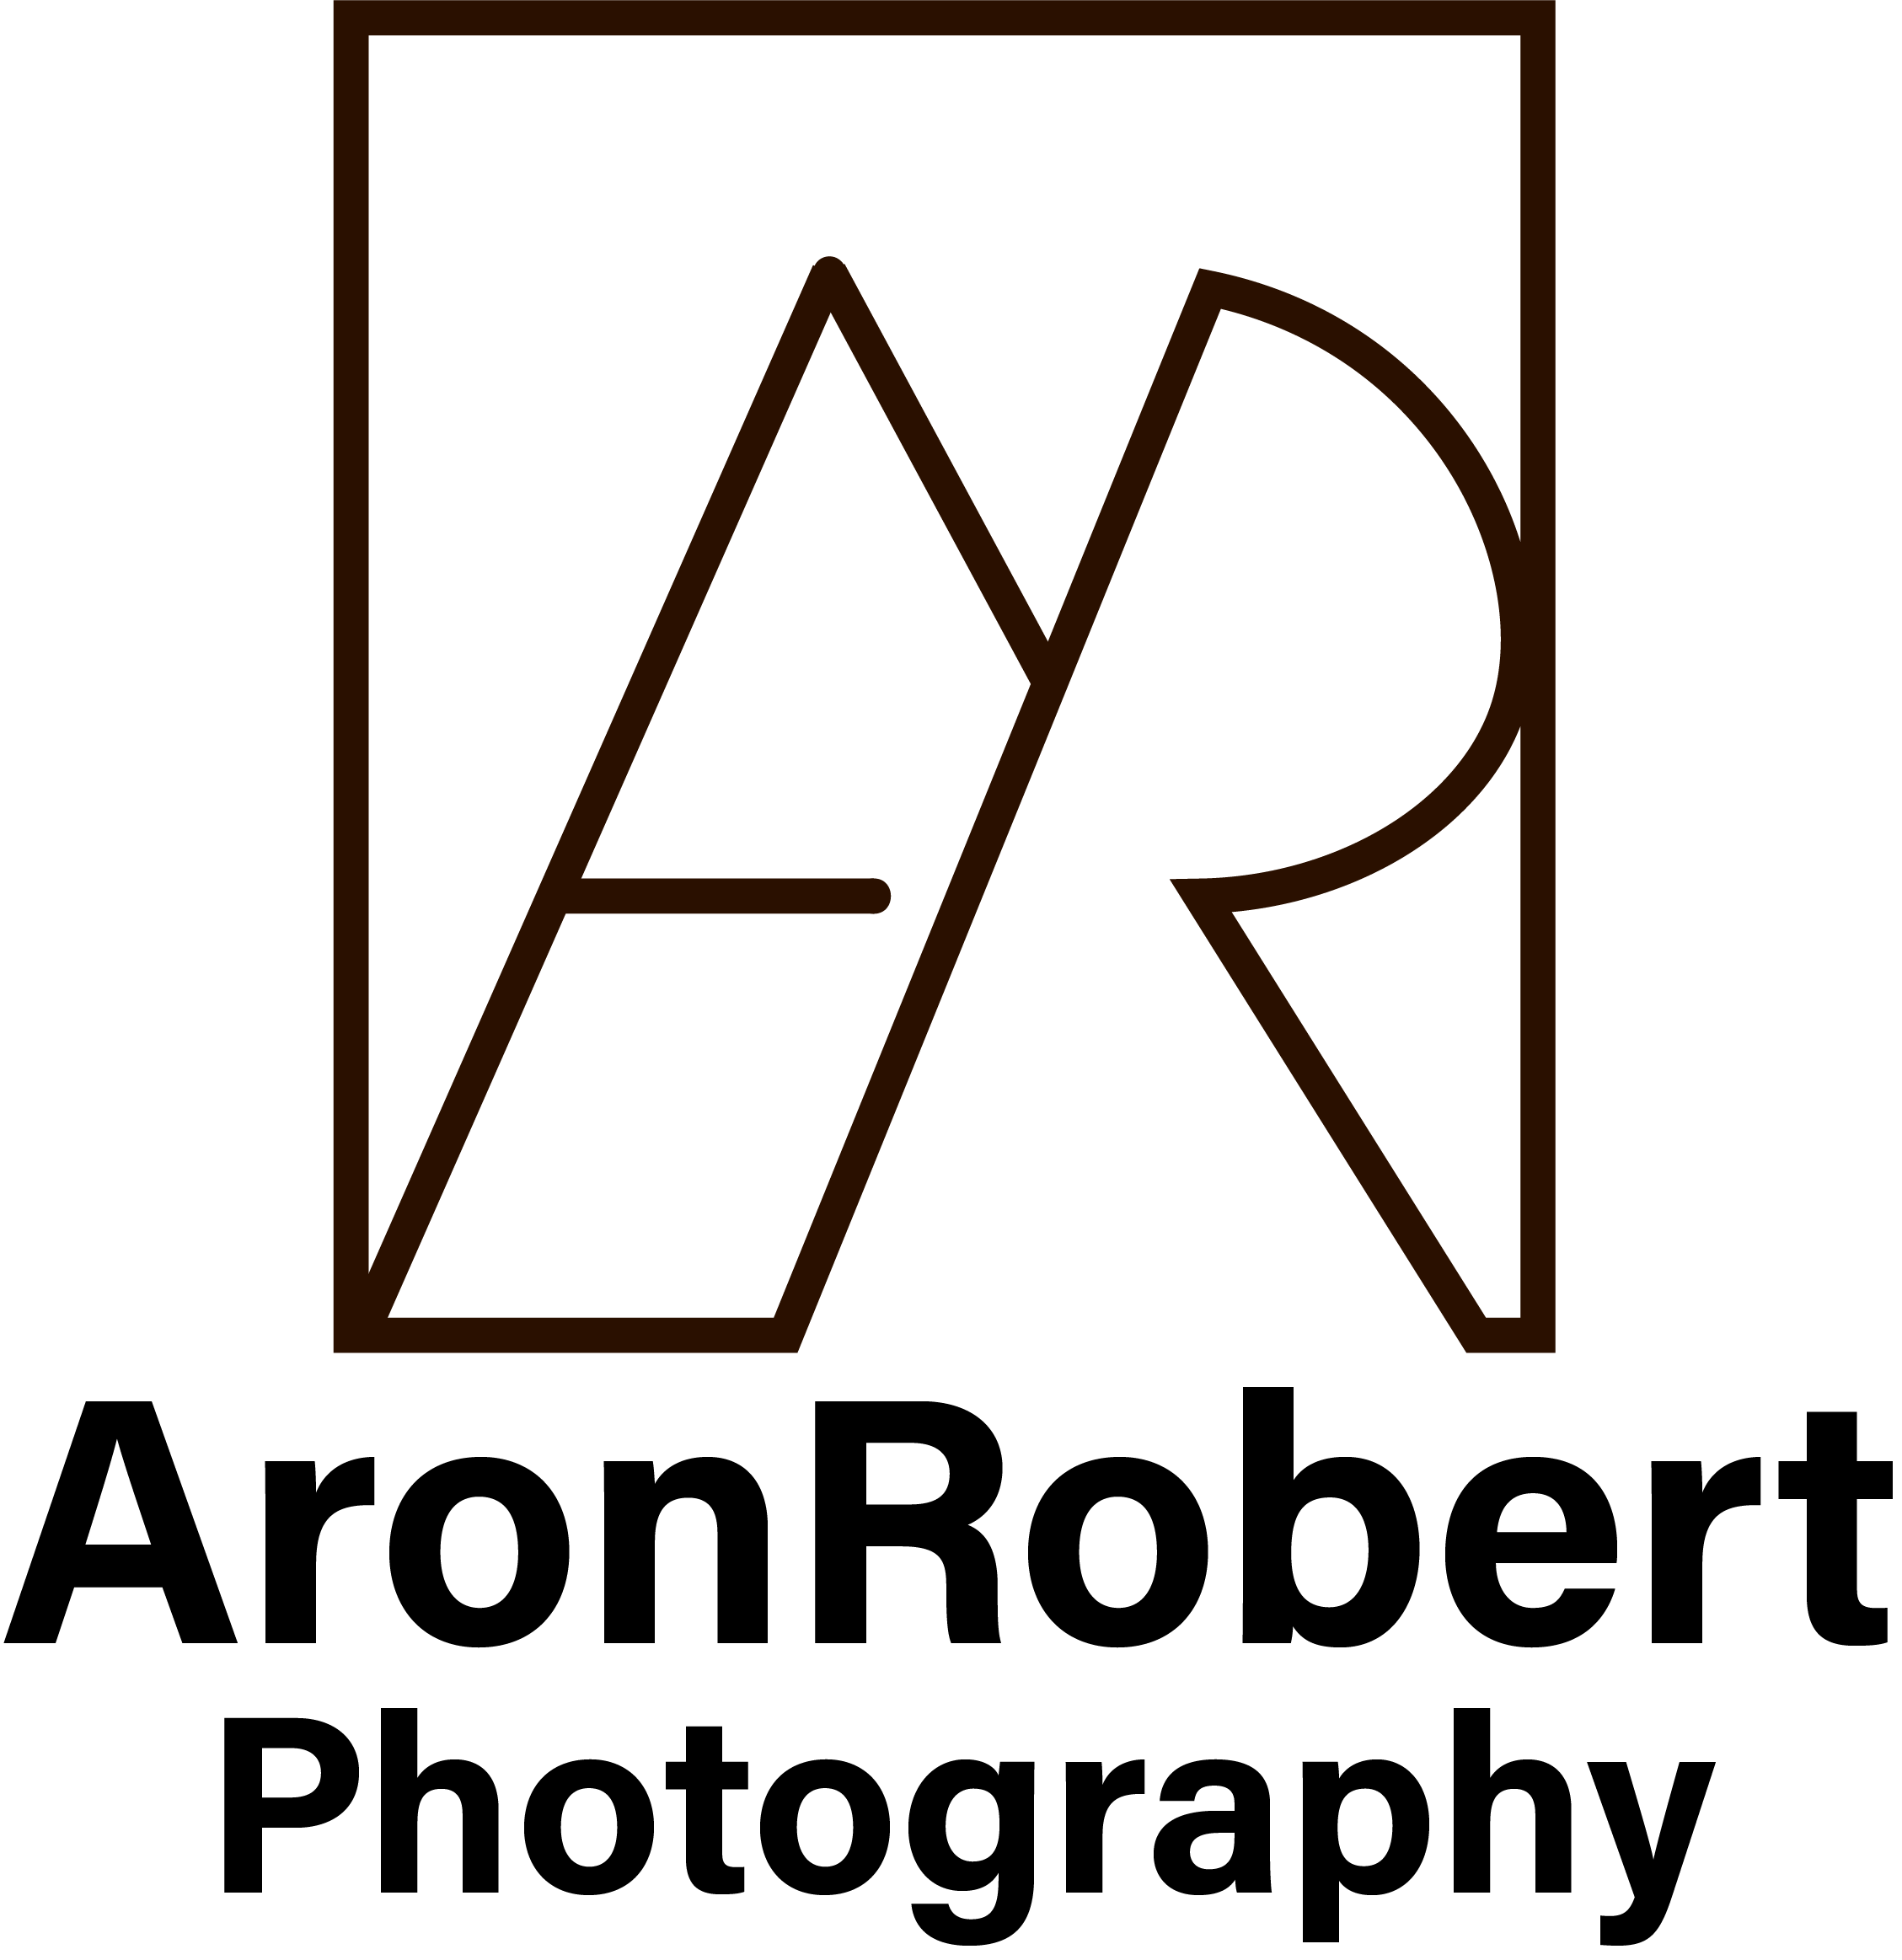 AronRobert Photography